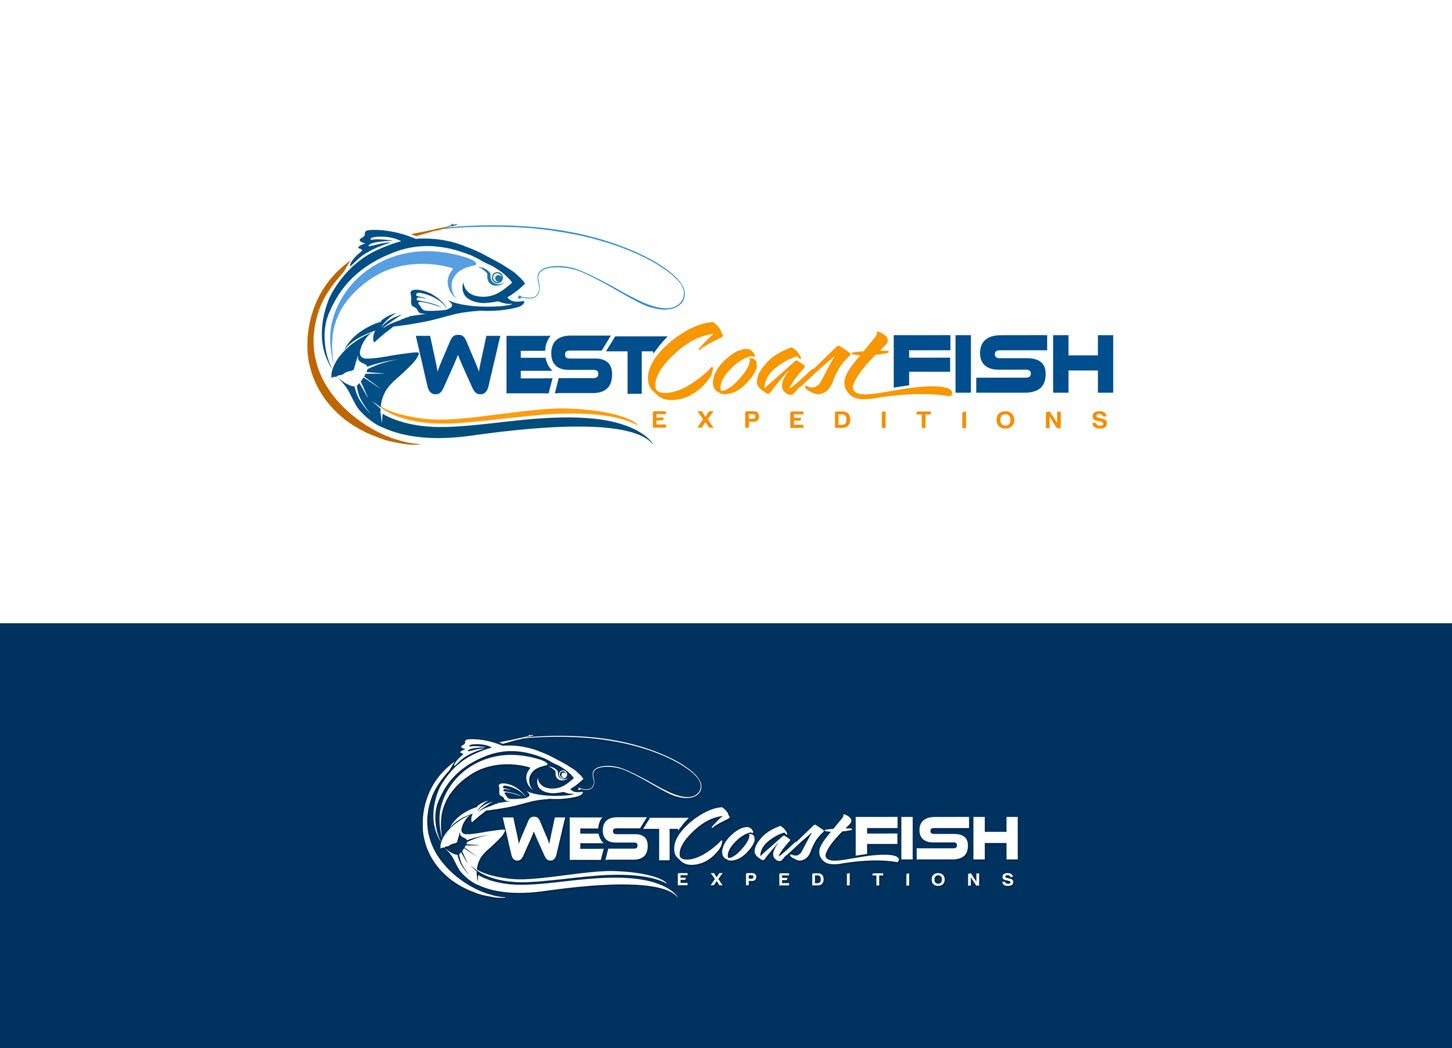 New logo wanted for Westcoast Fish Expeditions